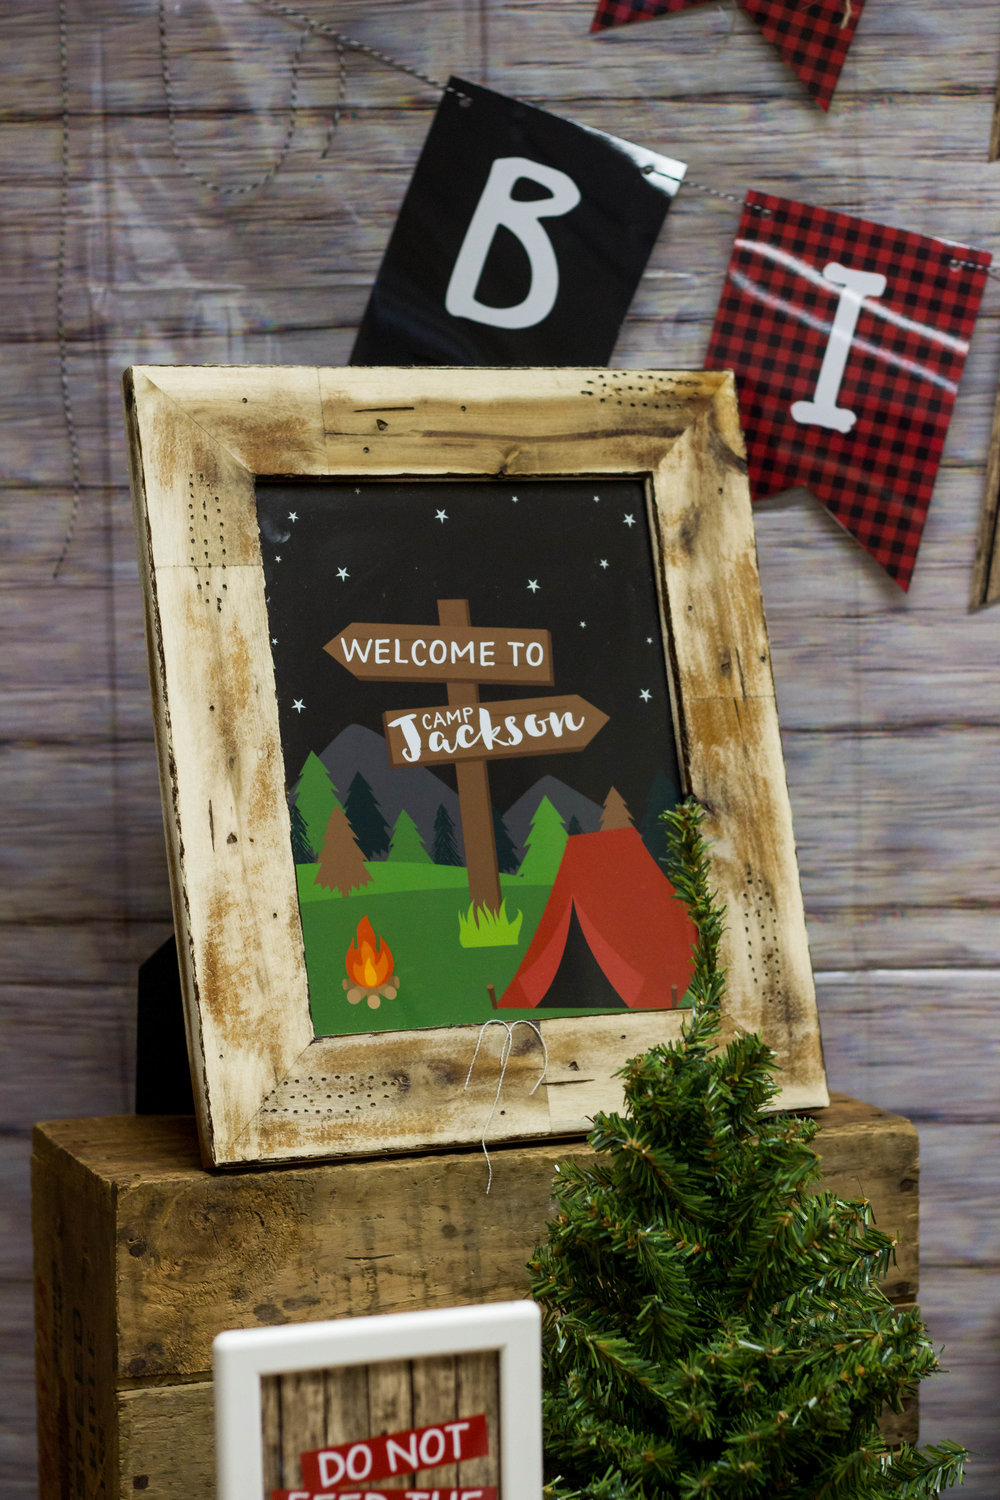 Welcome to Camp Jackson party sign